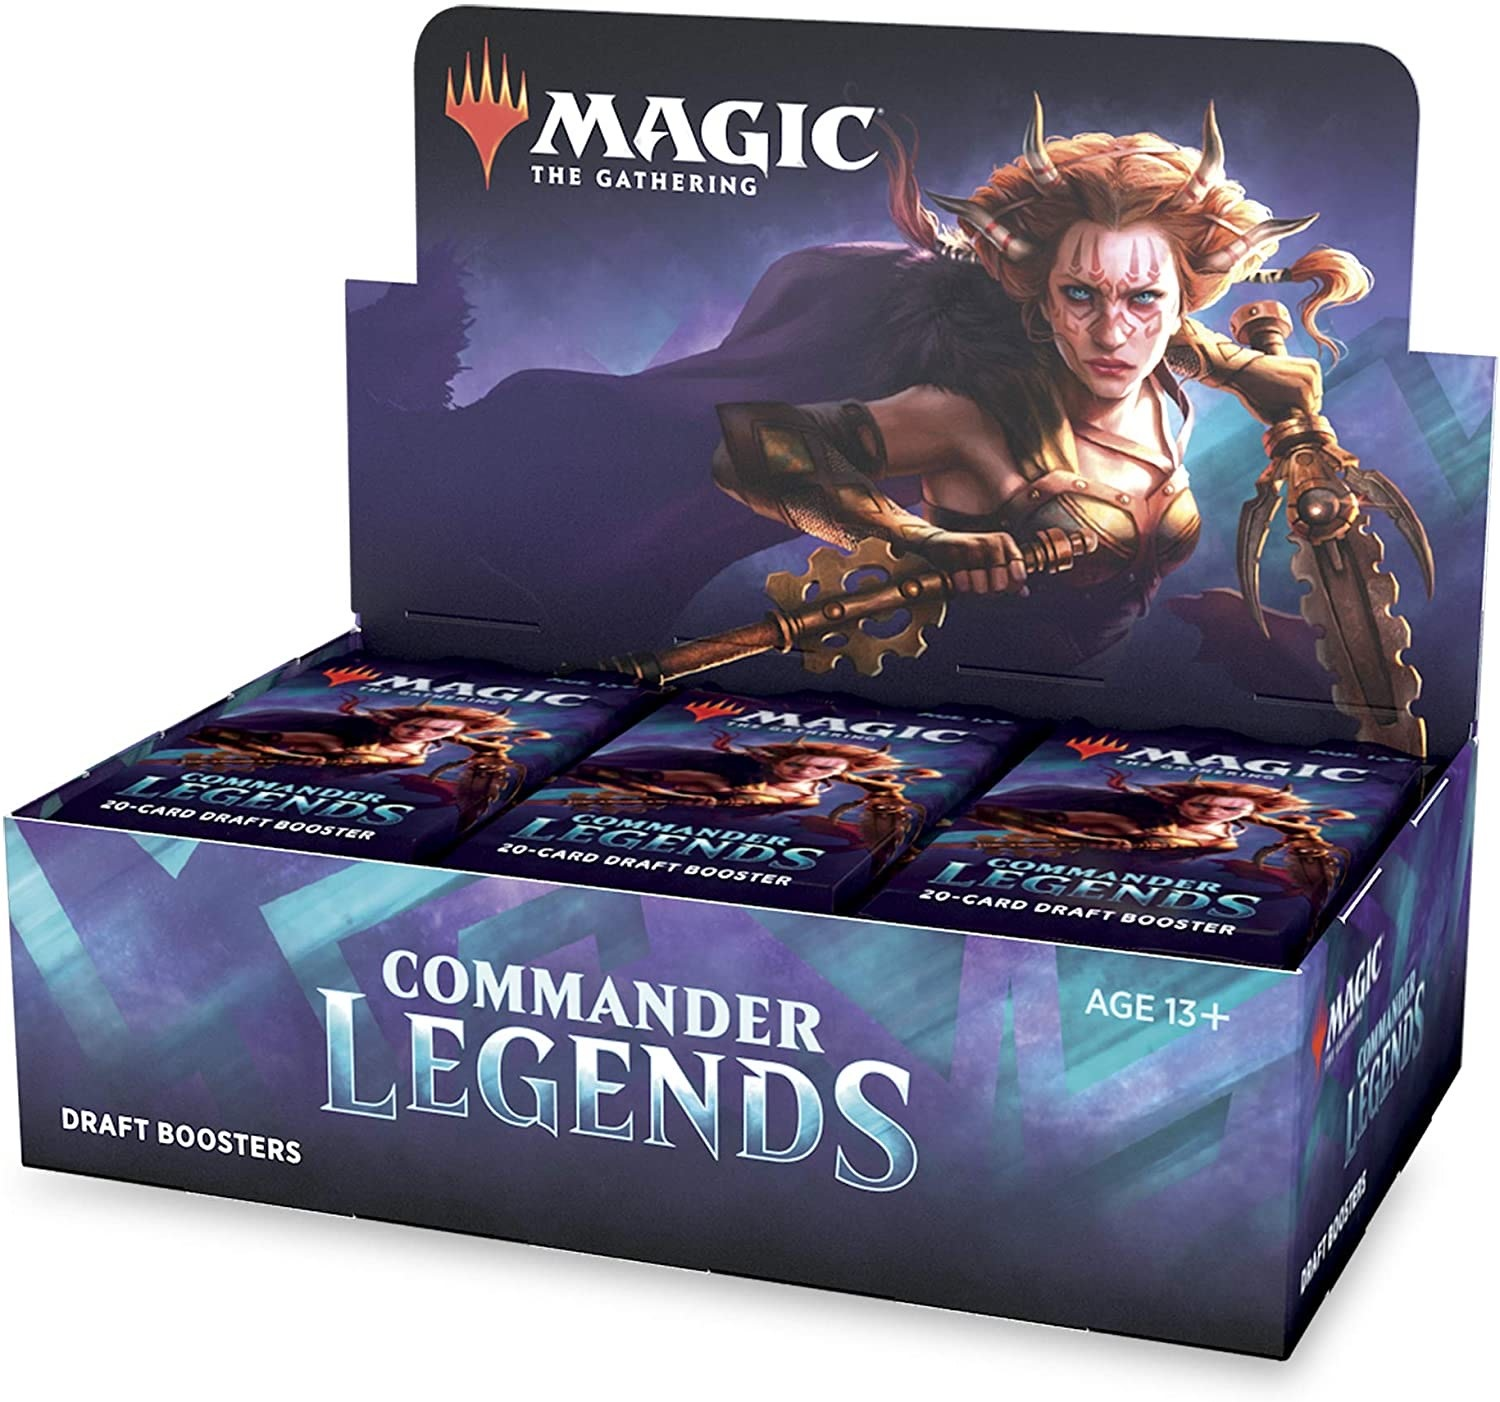 Magic the Gathering Magic the Gathering CCG: Commander legends booster